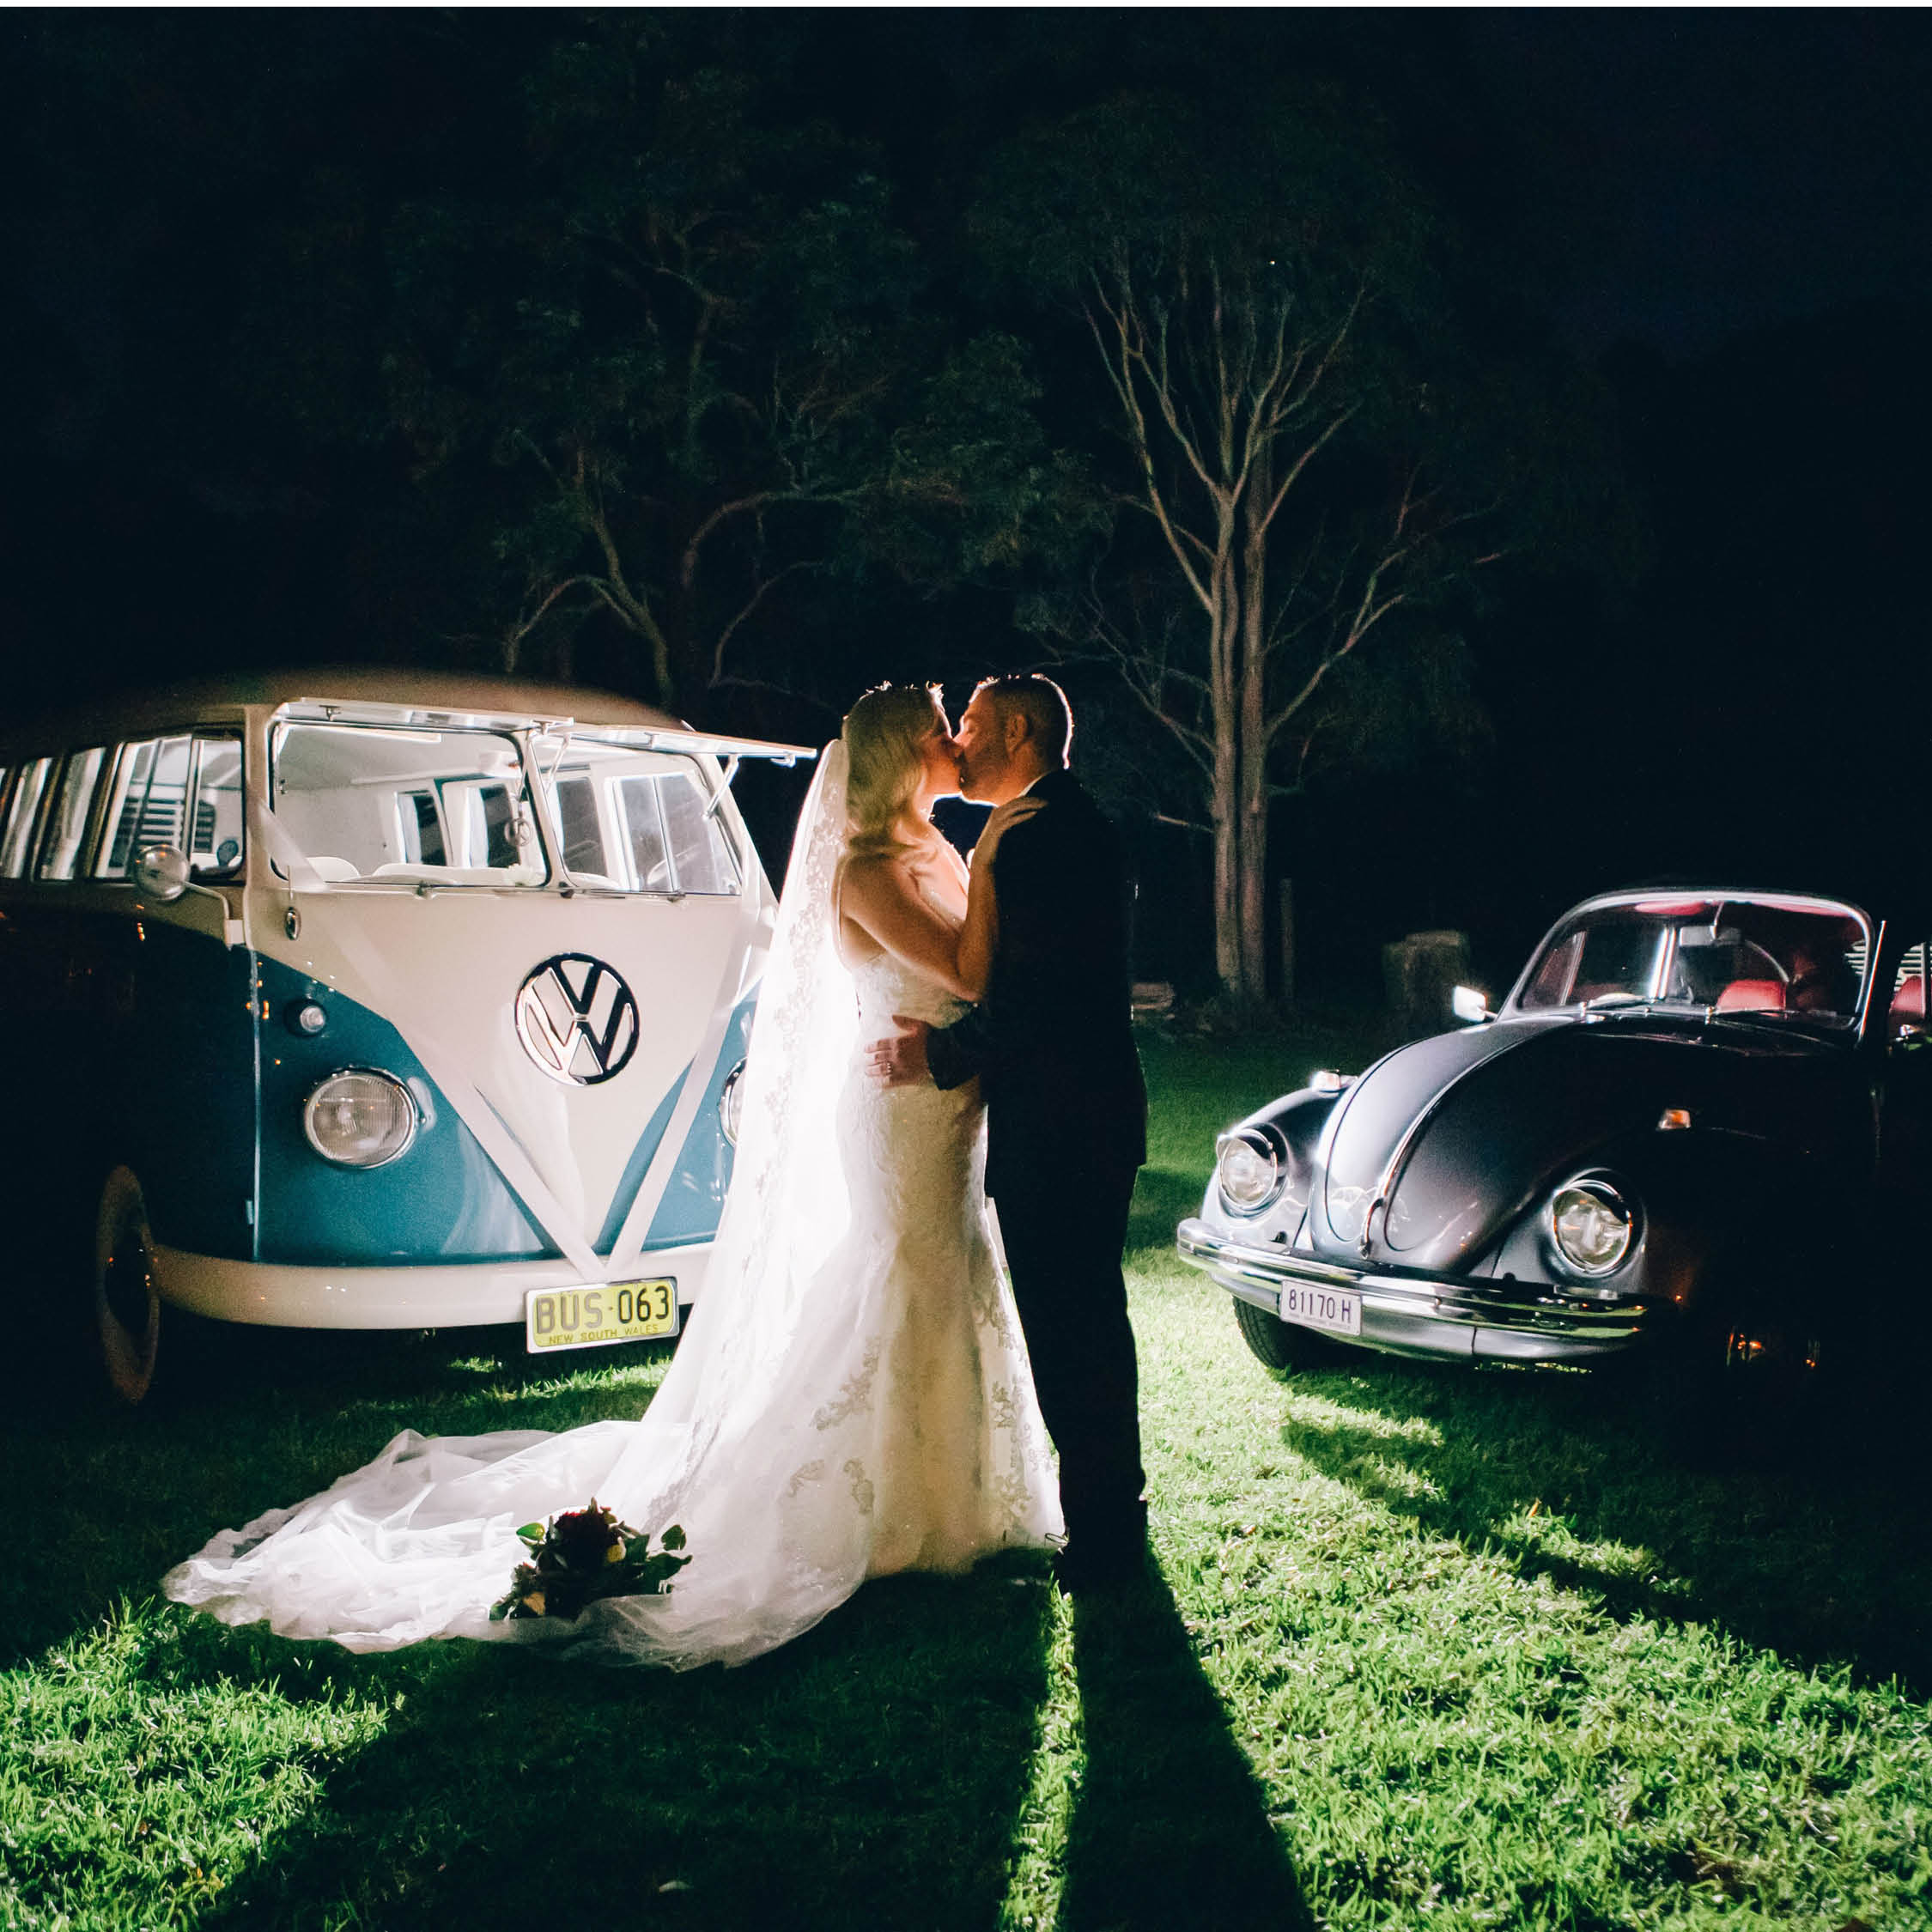 ideas for an intimate wedding, intimate wedding transport, wedding guest transport